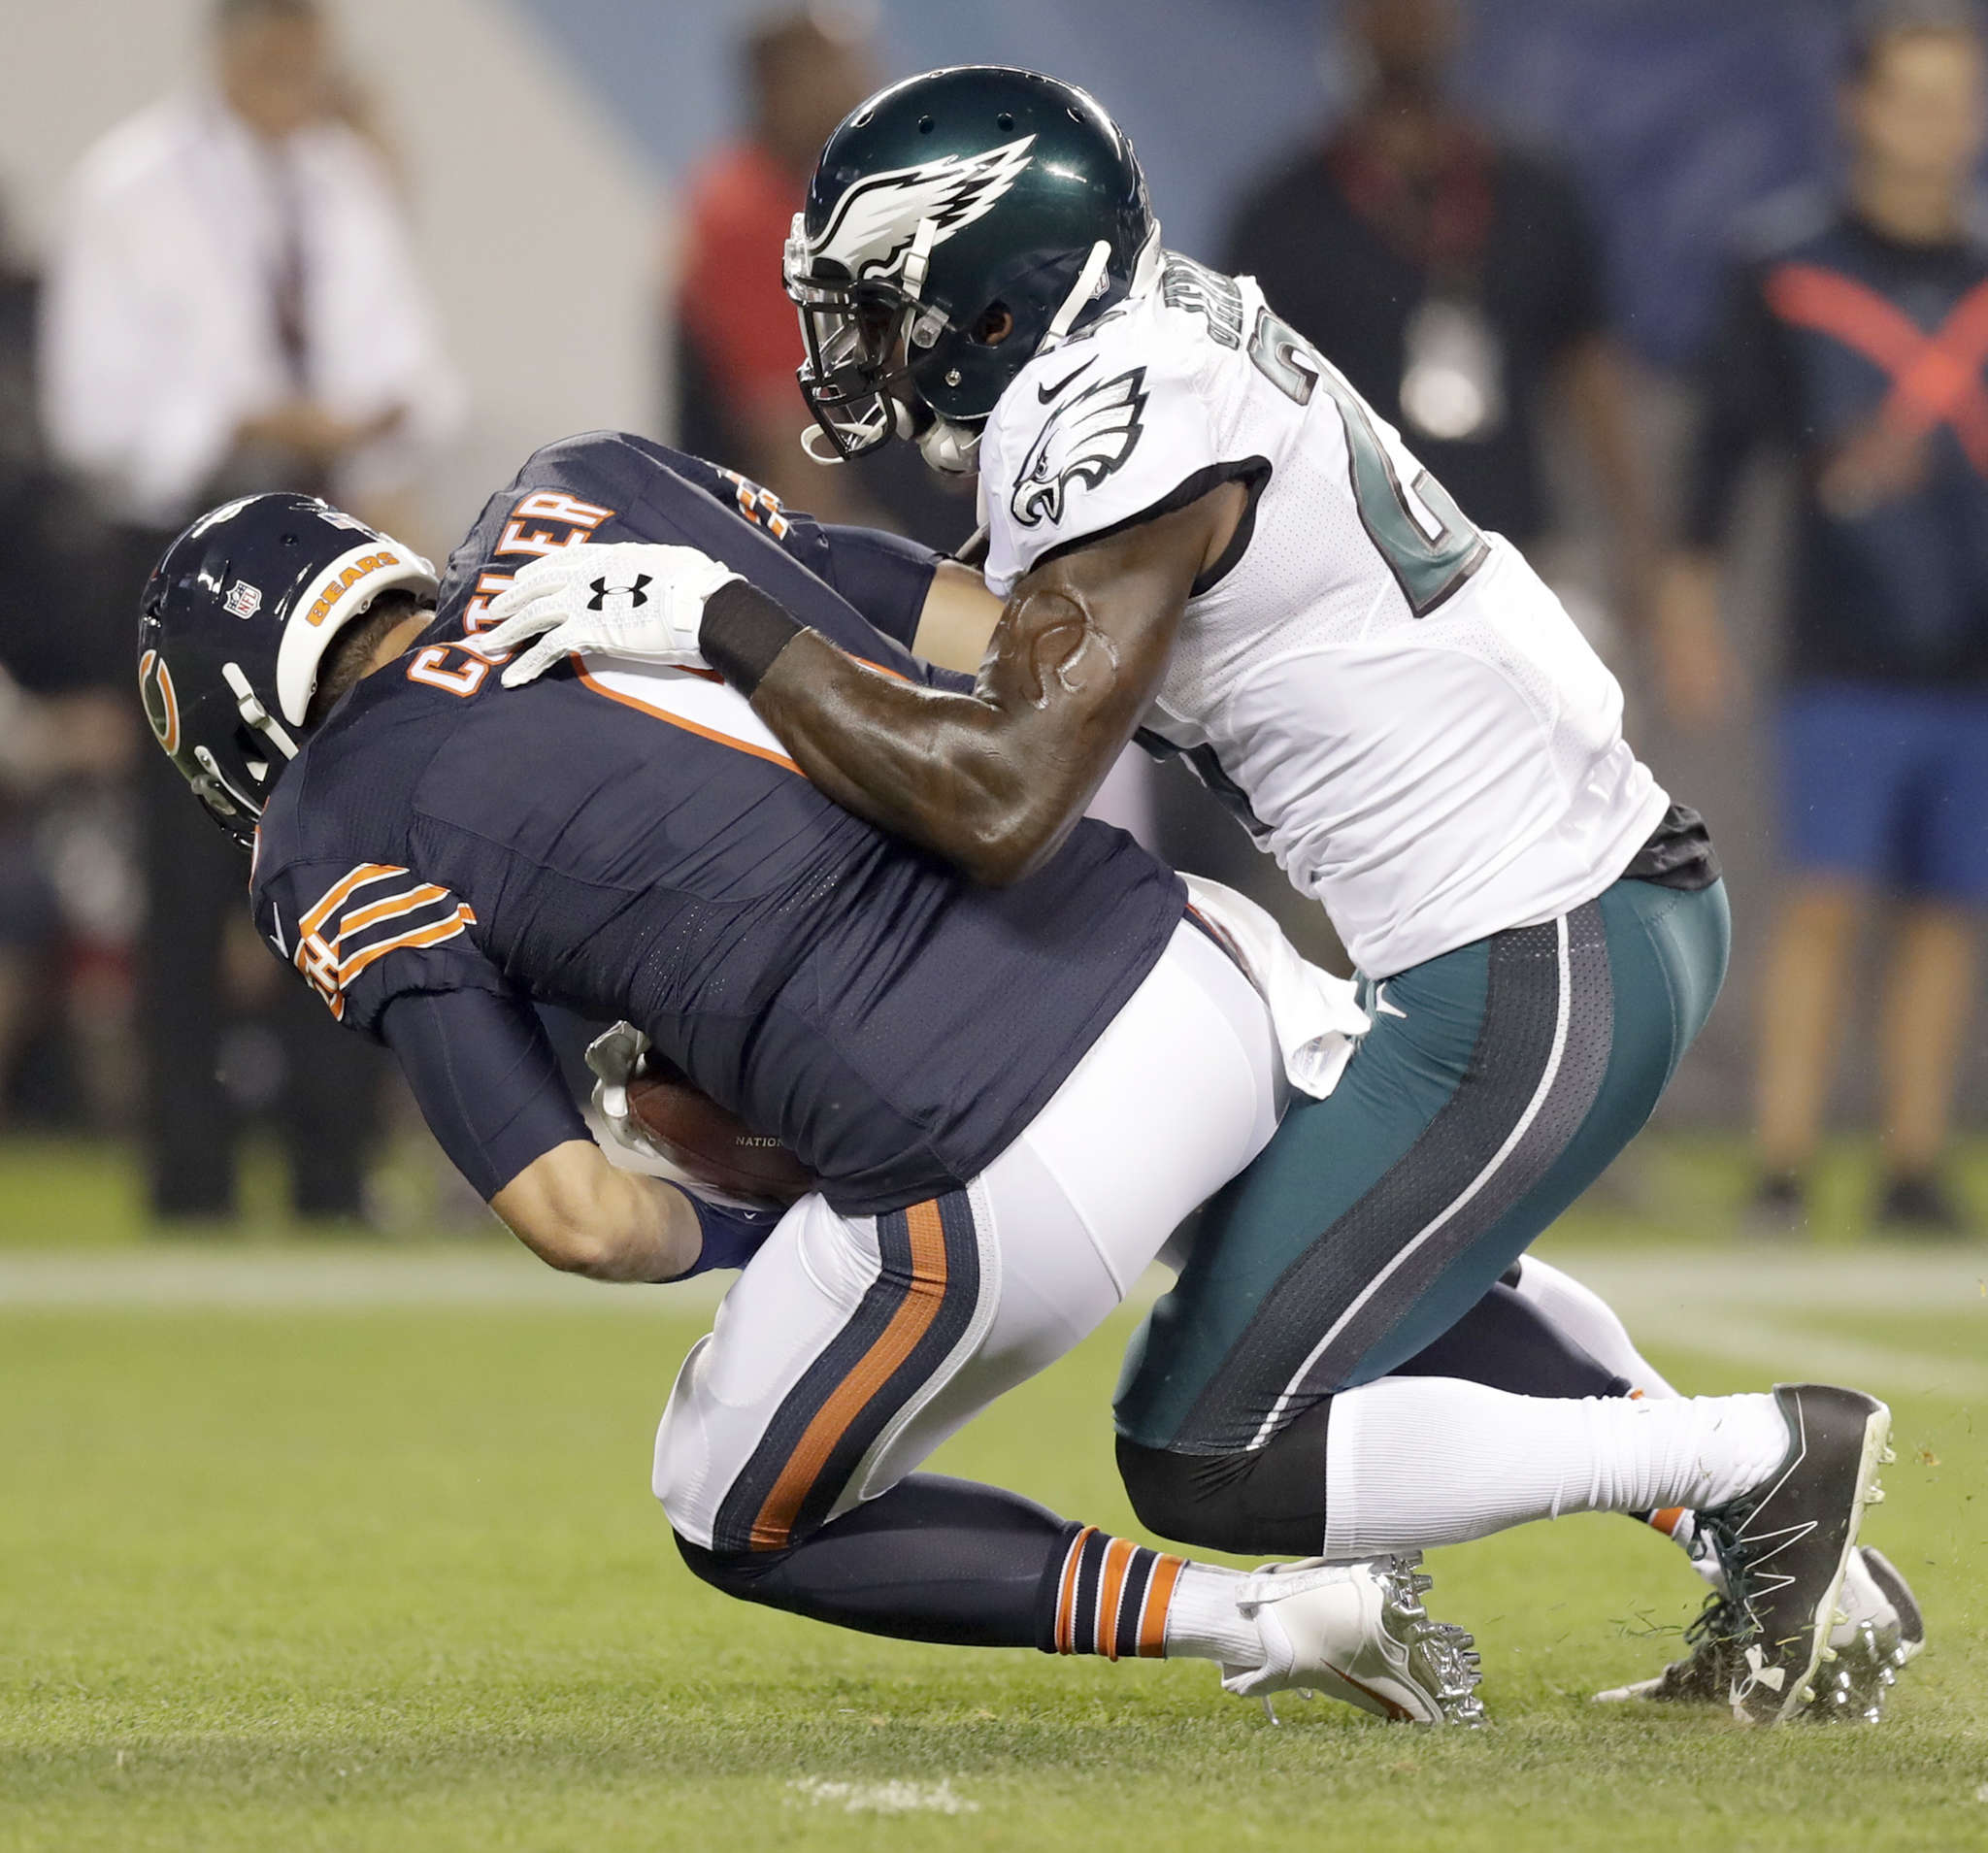 Malcolm Jenkins , who was one of threeEagles to raise their fists in protest during the national anthem Monday night, sacks Bears´ Jay Cutler during the first quarter. YONG KIM / Staff Photographer